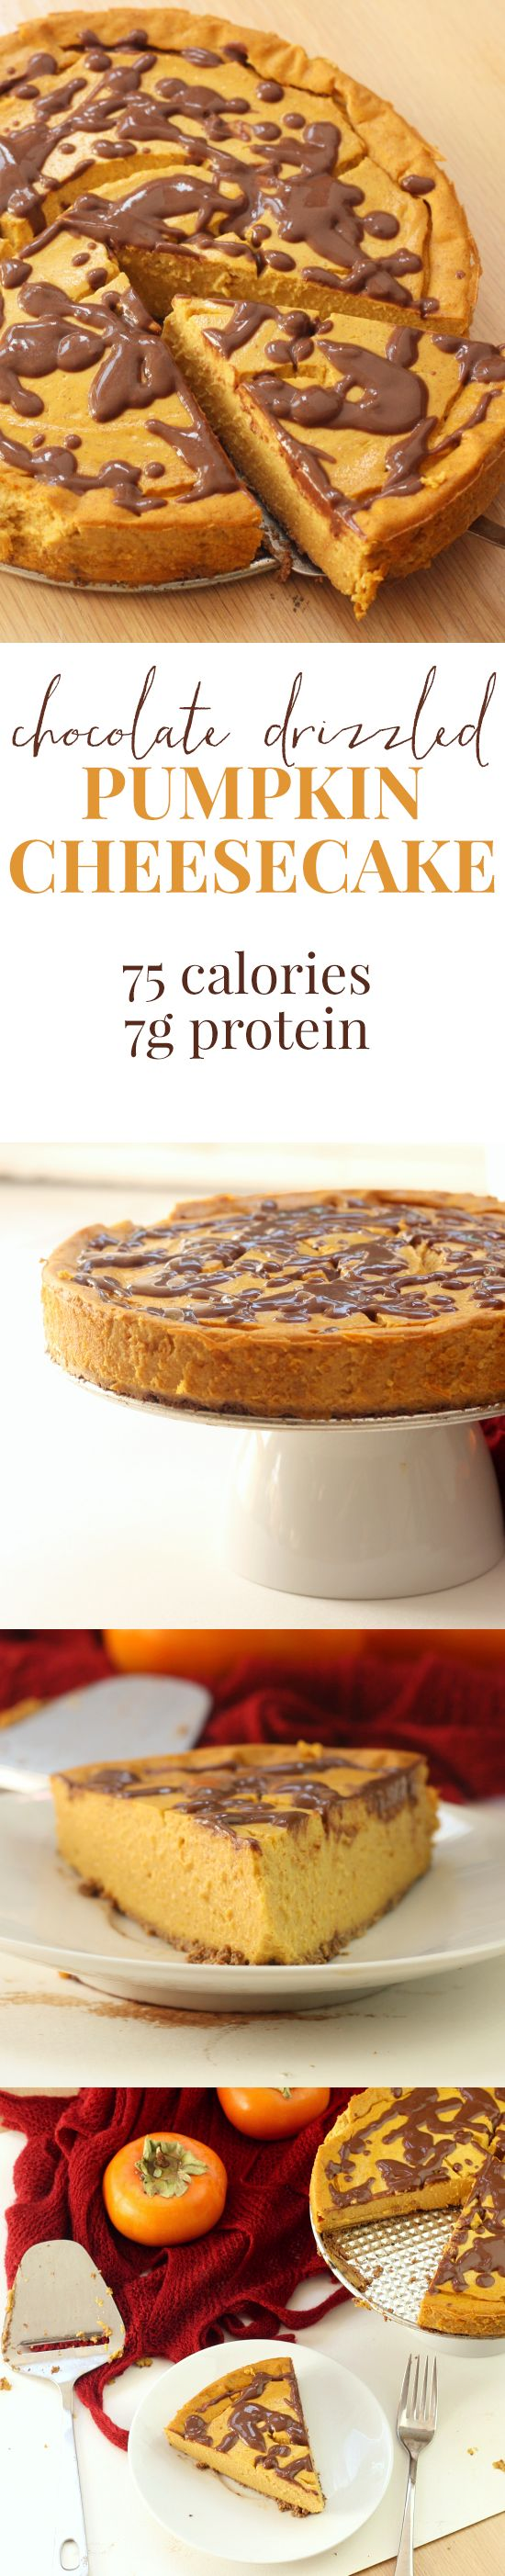 THIS RECIPE IS A MIRACLE. Pumpkin cheesecake drizzled with chocolate. 75 calories a slice, 600 for the whole cake.